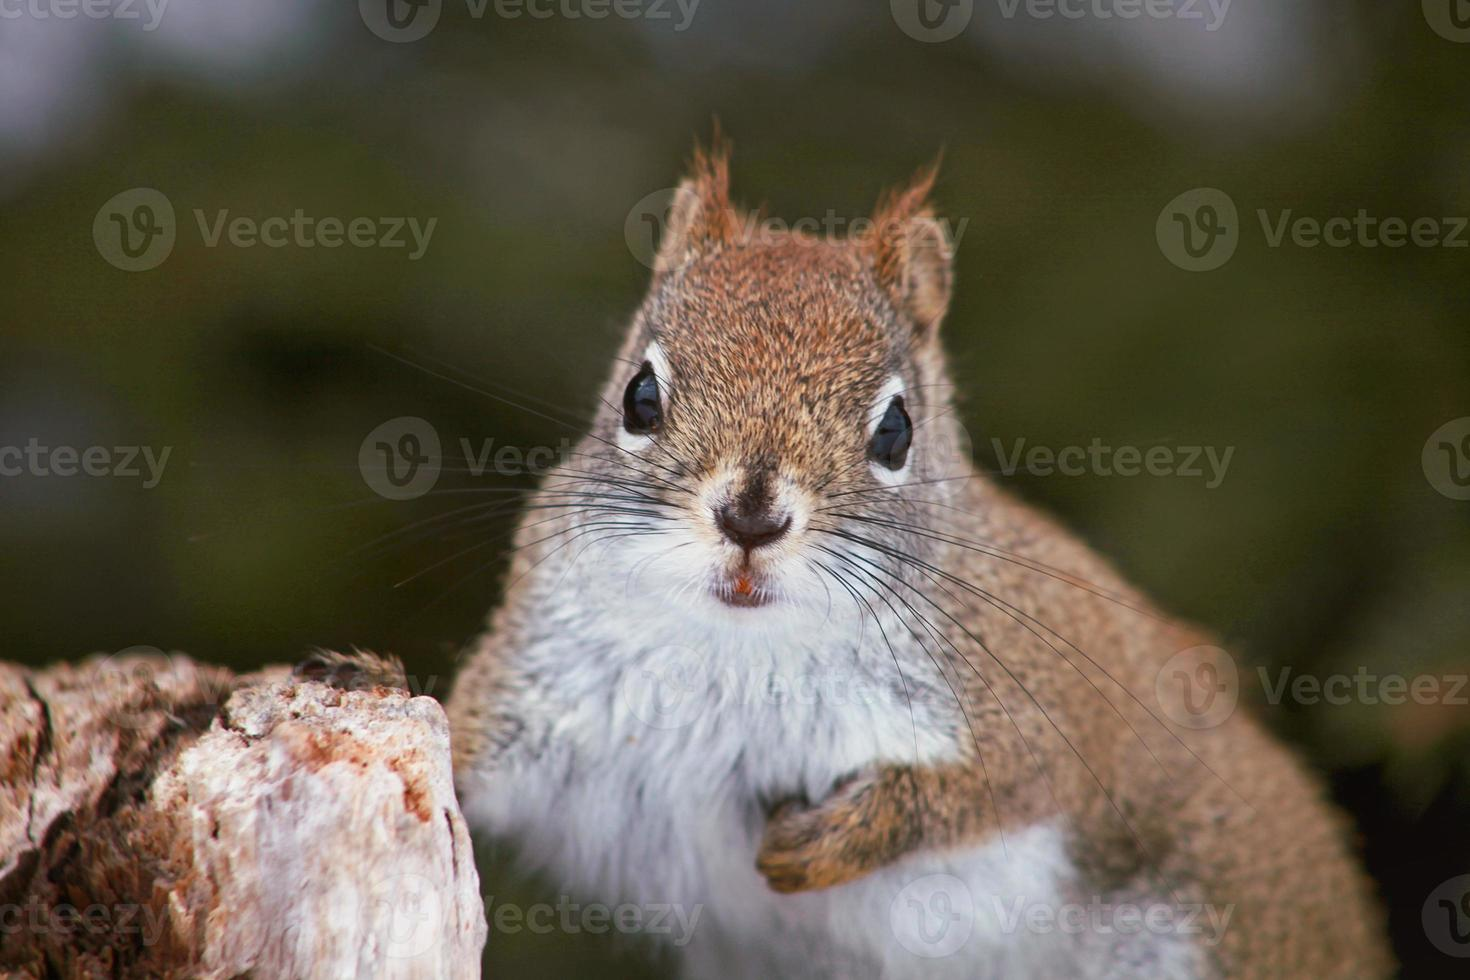 Lovely squirrel photo